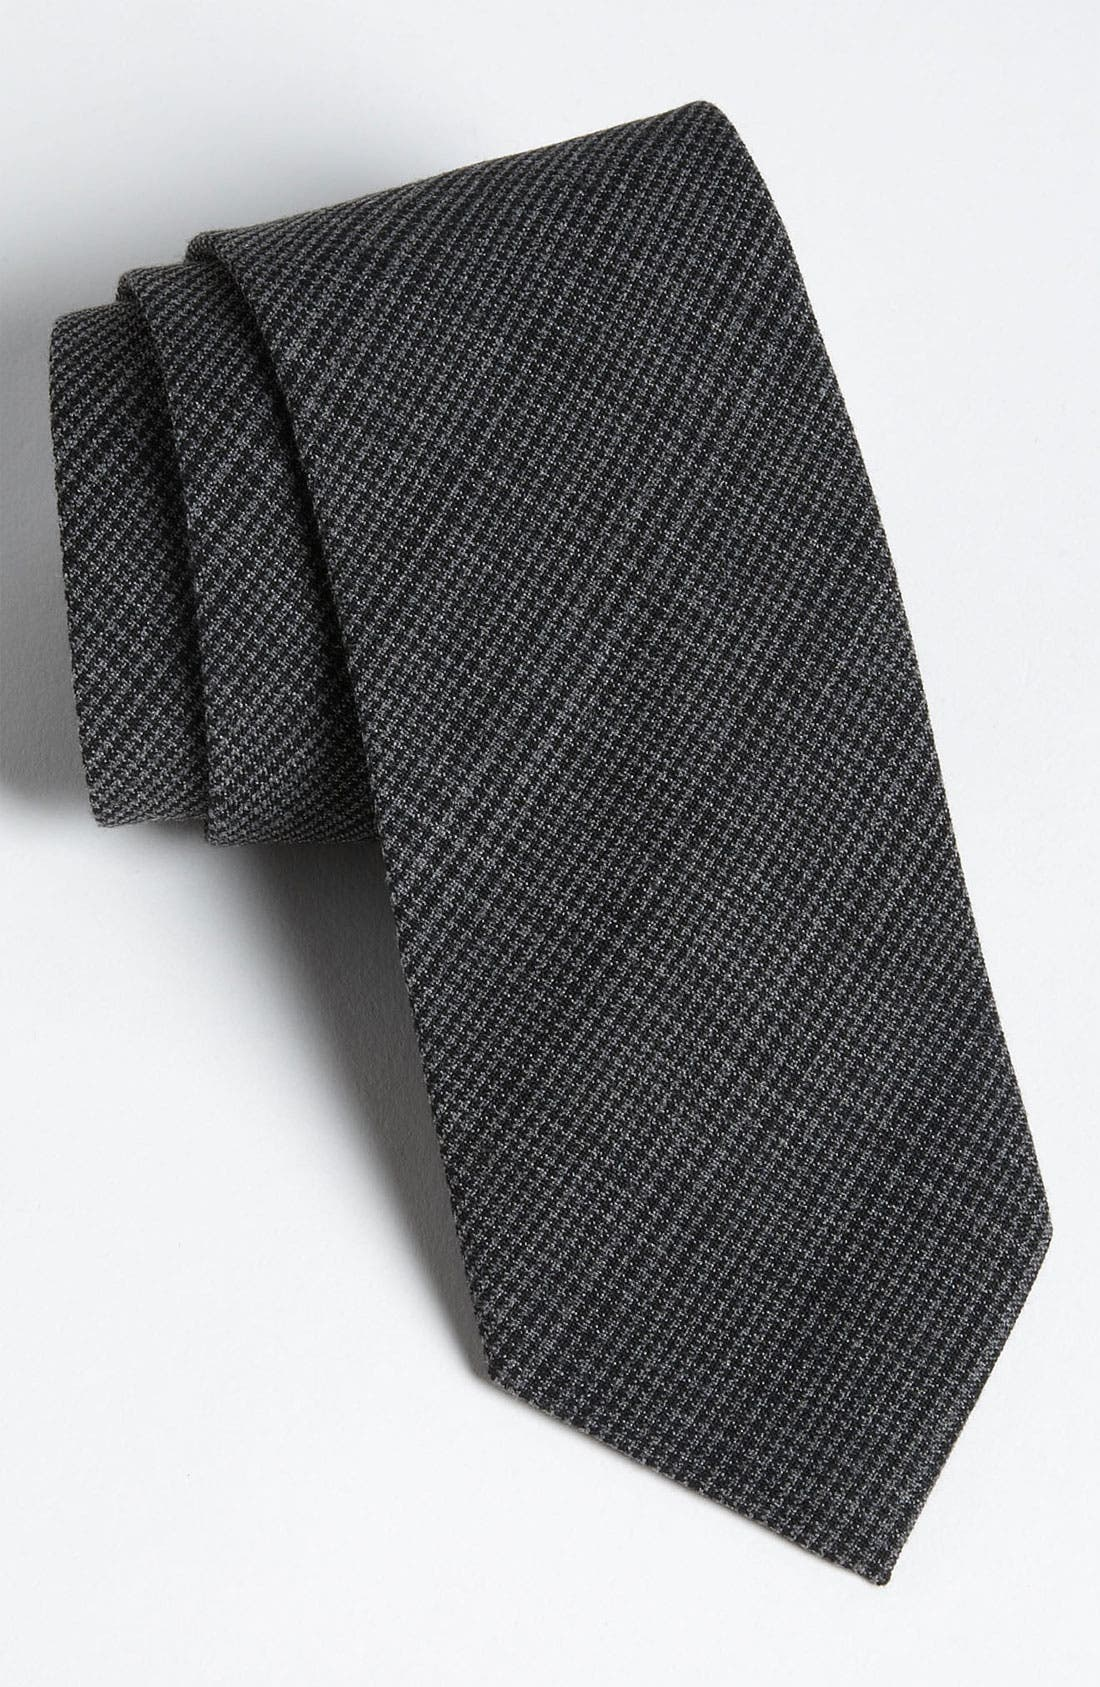 Main Image - 1901 Woven Tie